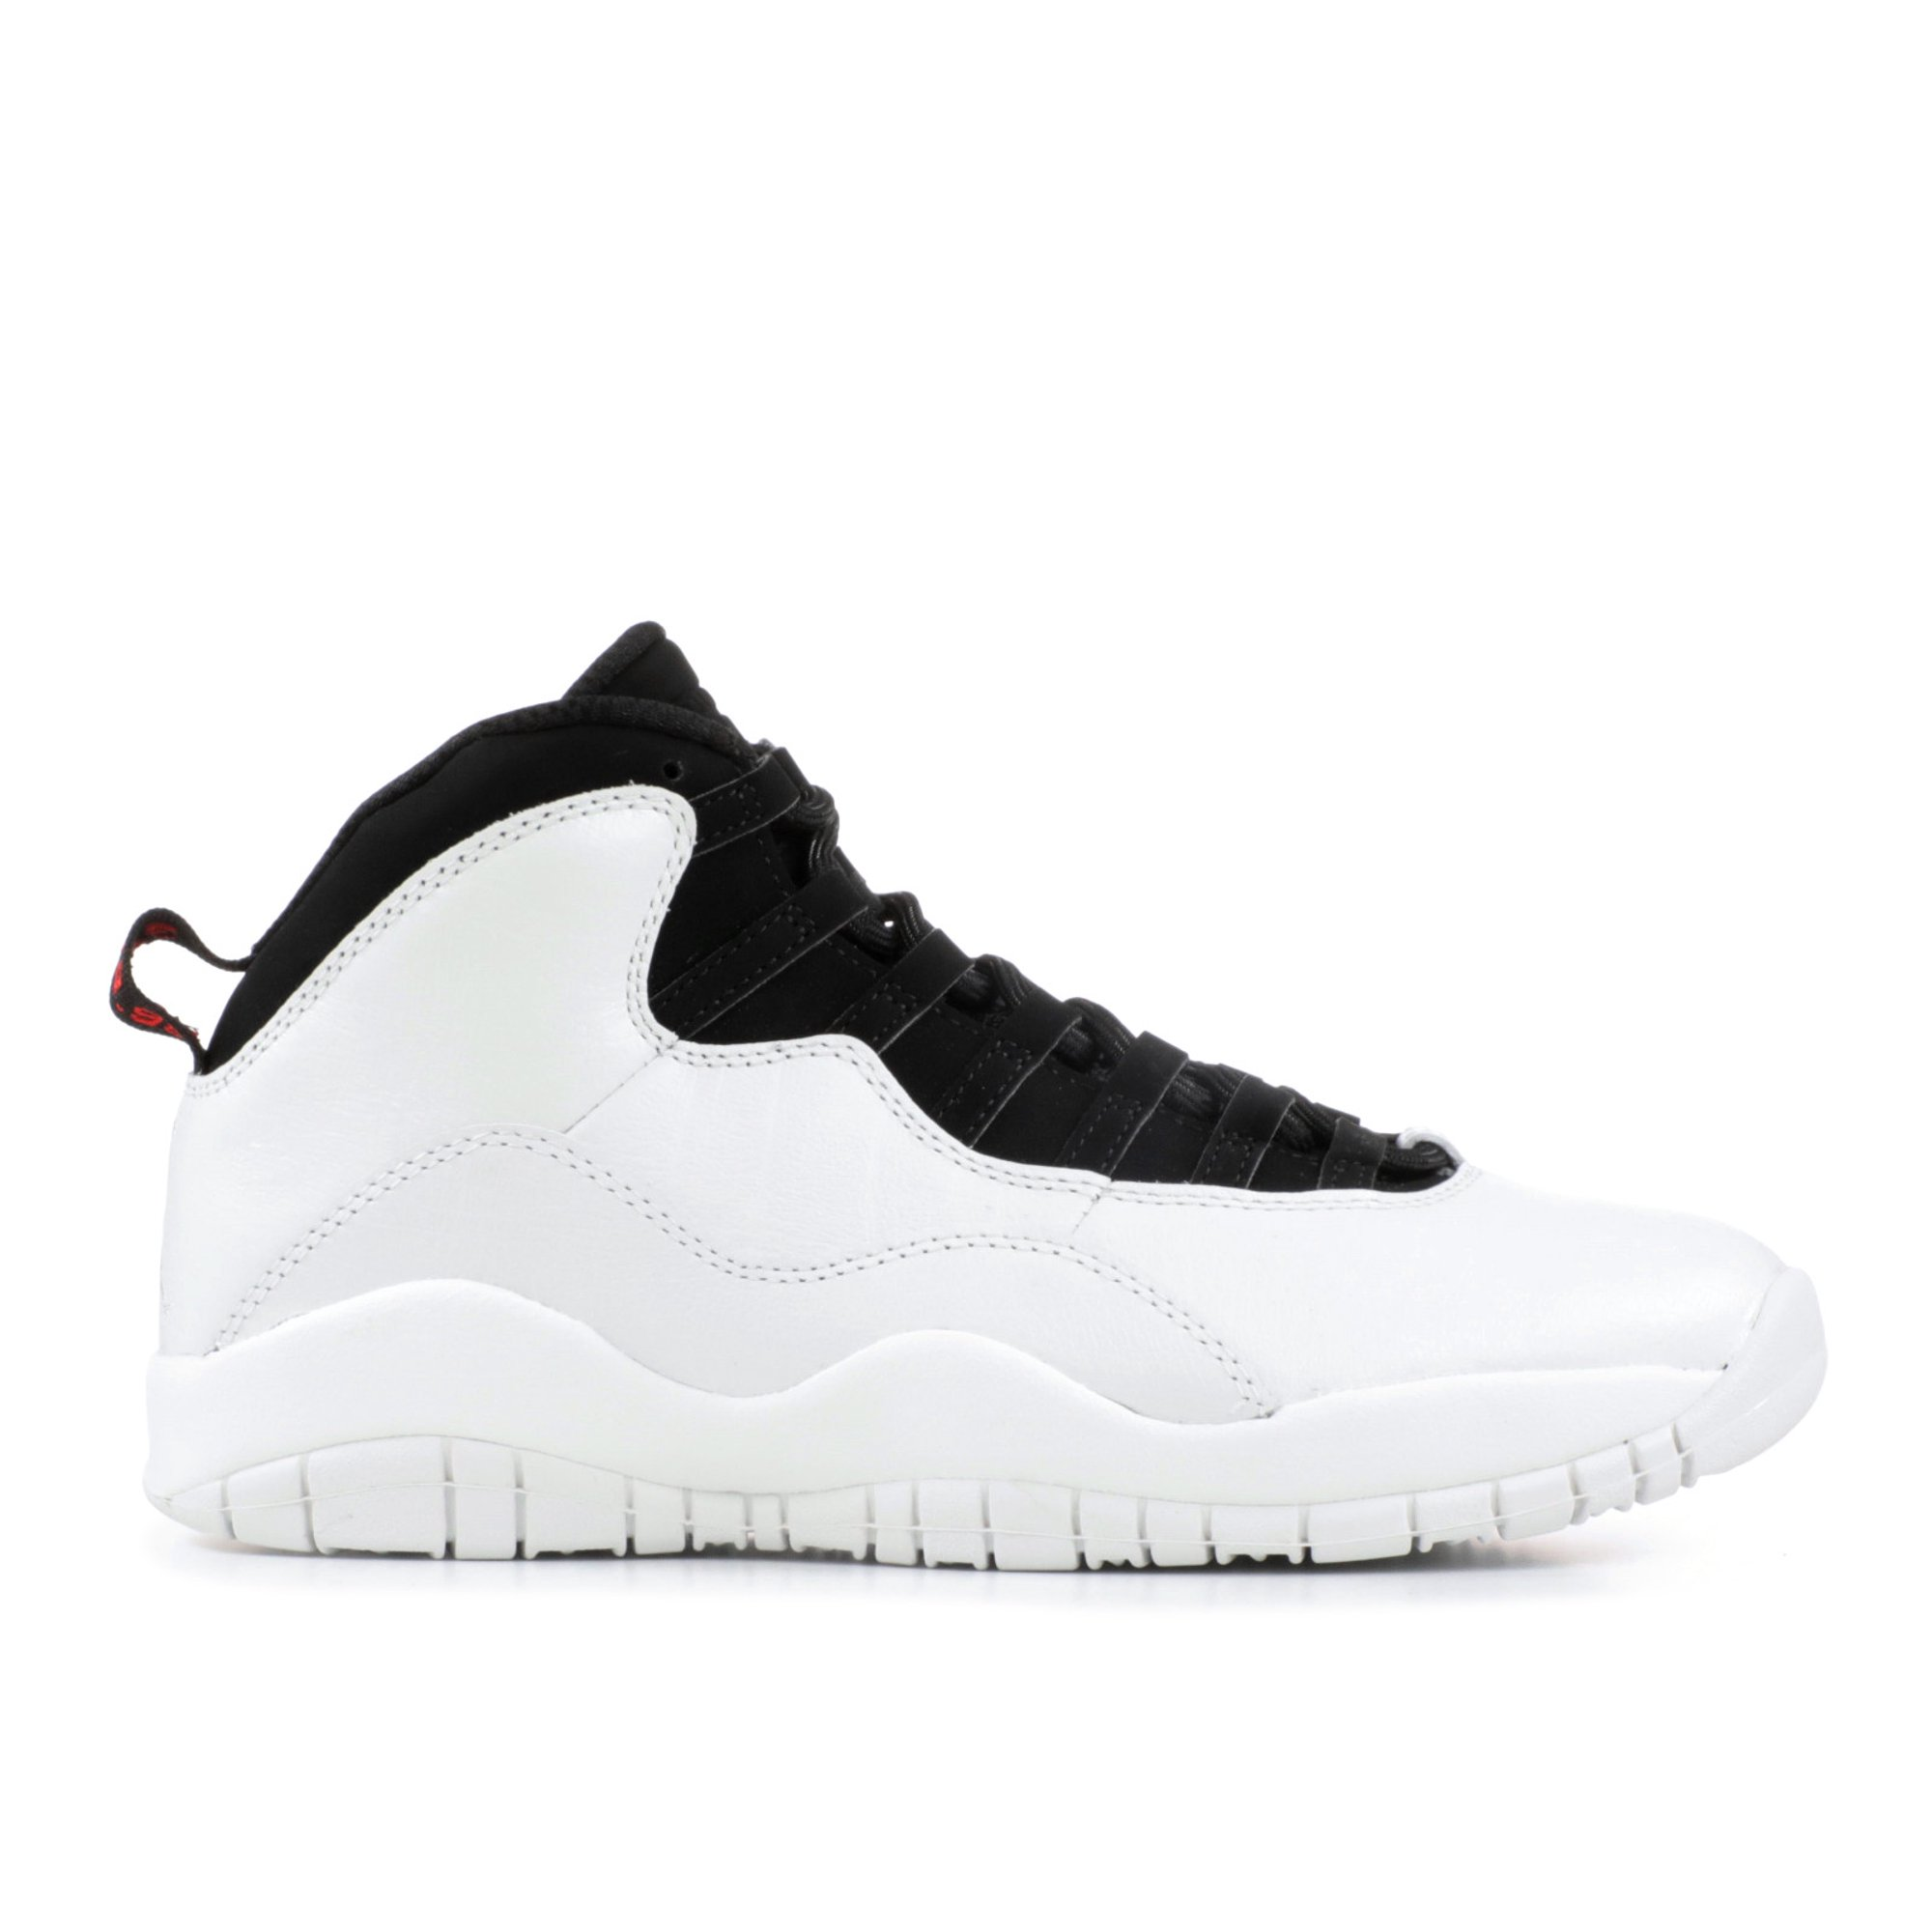 designer fashion 3a40a f8030 Air Jordan - Men - Air Jordan 10 Retro 'Im Back' - 310805-104 - Size 13